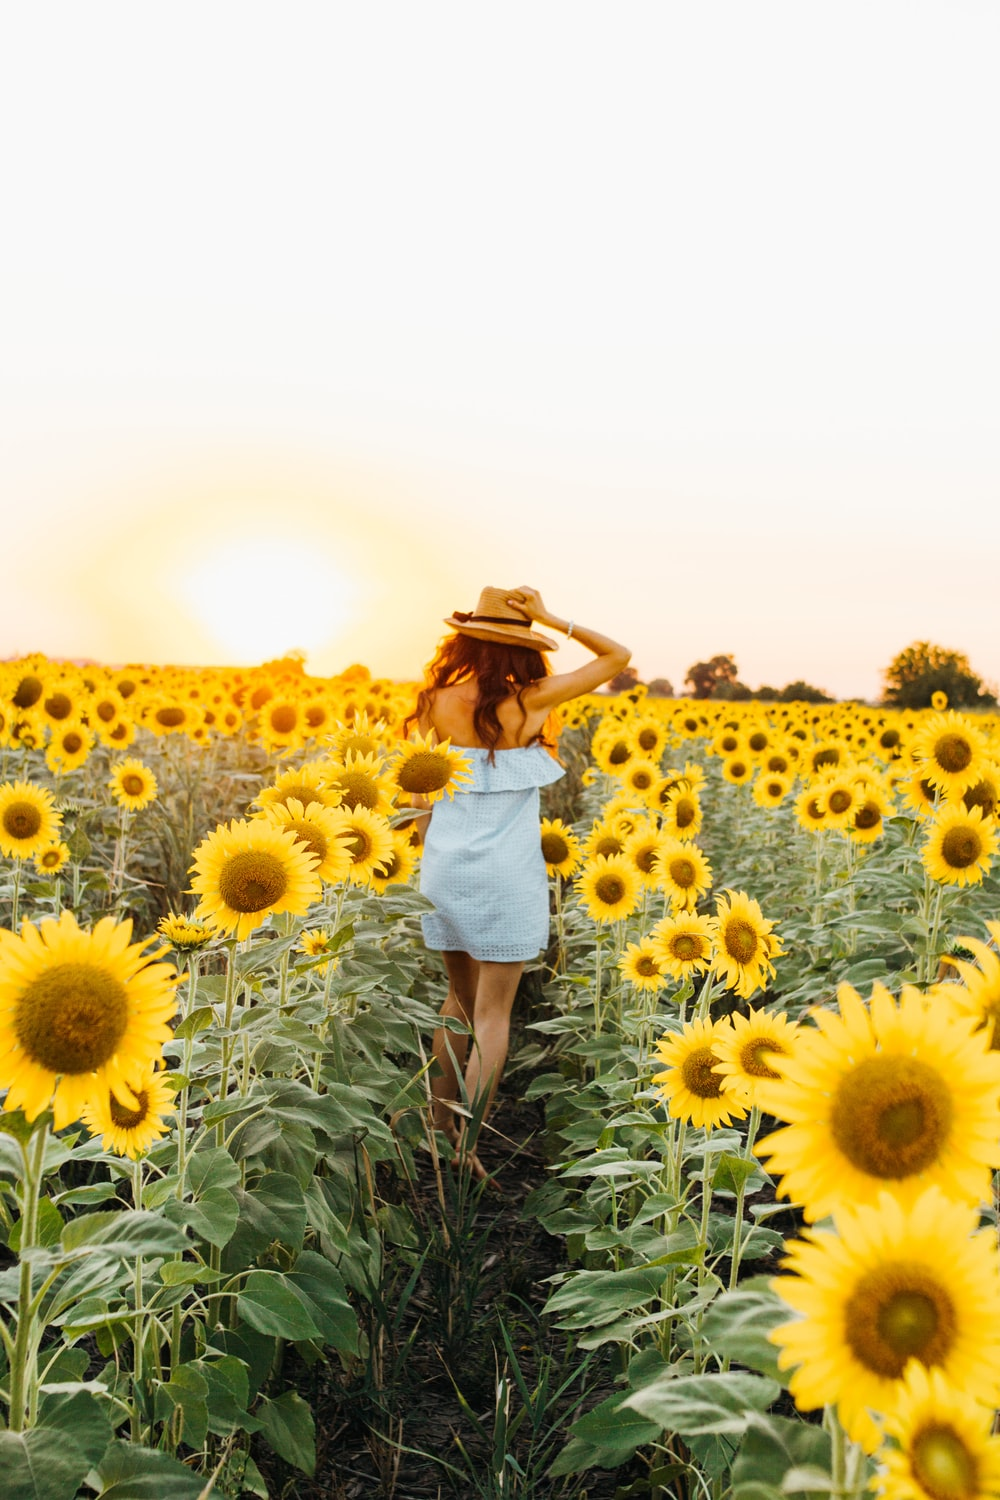 woman standing between sunflower field during daytime